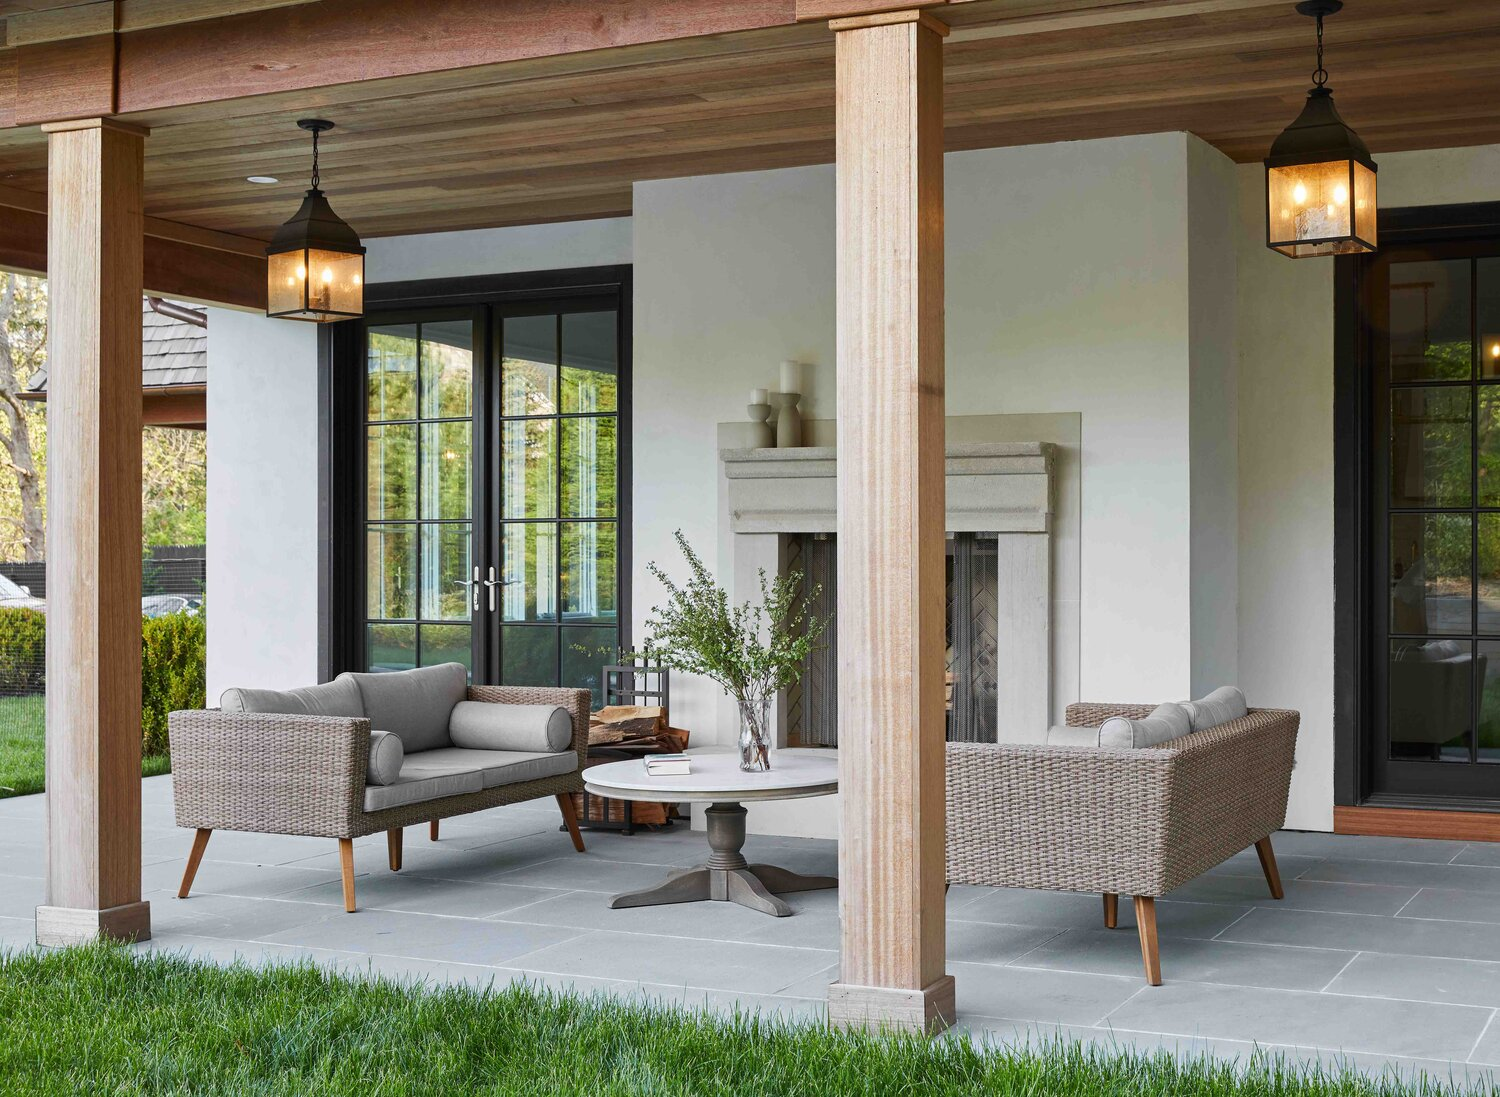 French Country Home by Cabinet Plant - poolside patio